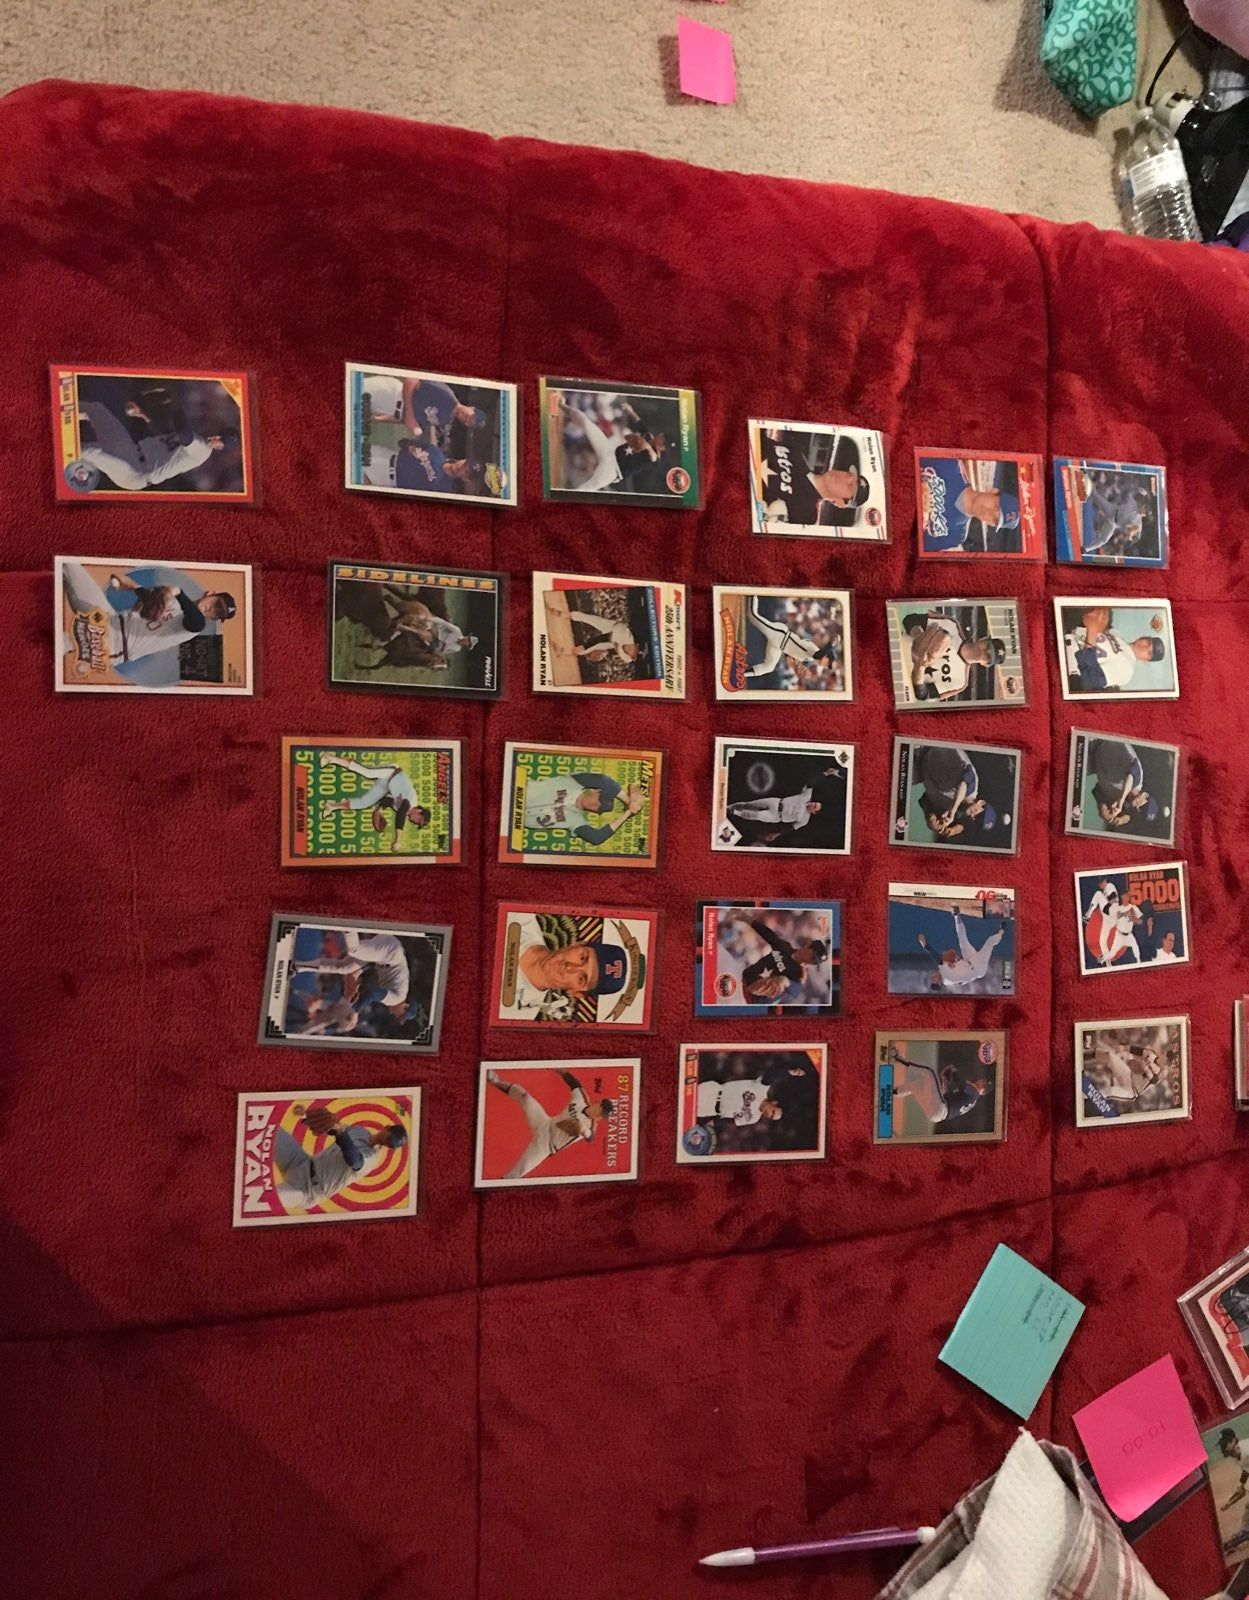 27 nolan ryan baseball cards all cards are in sleeves all